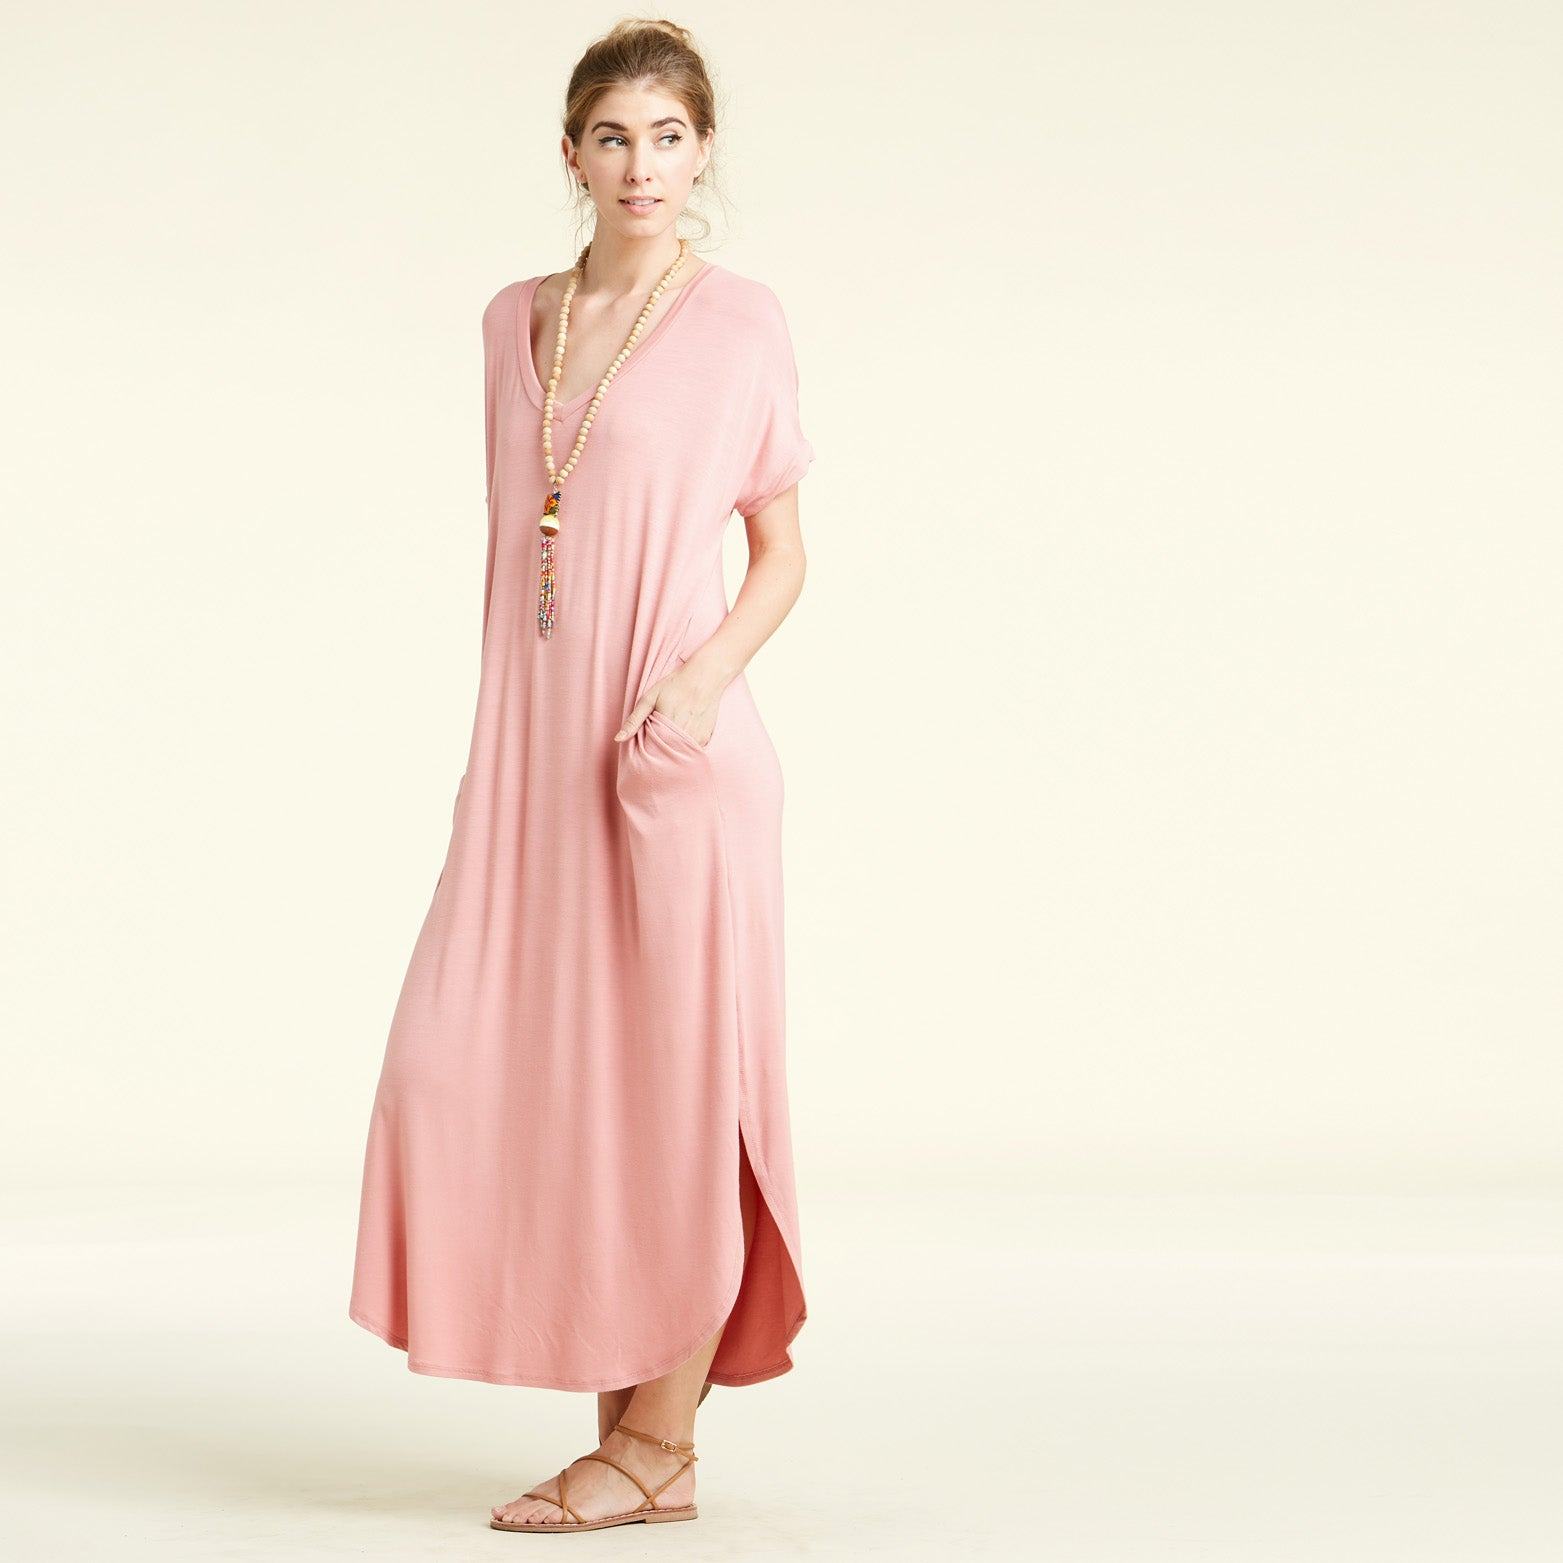 RL Mauve Maxi Dress - Love, Kuza